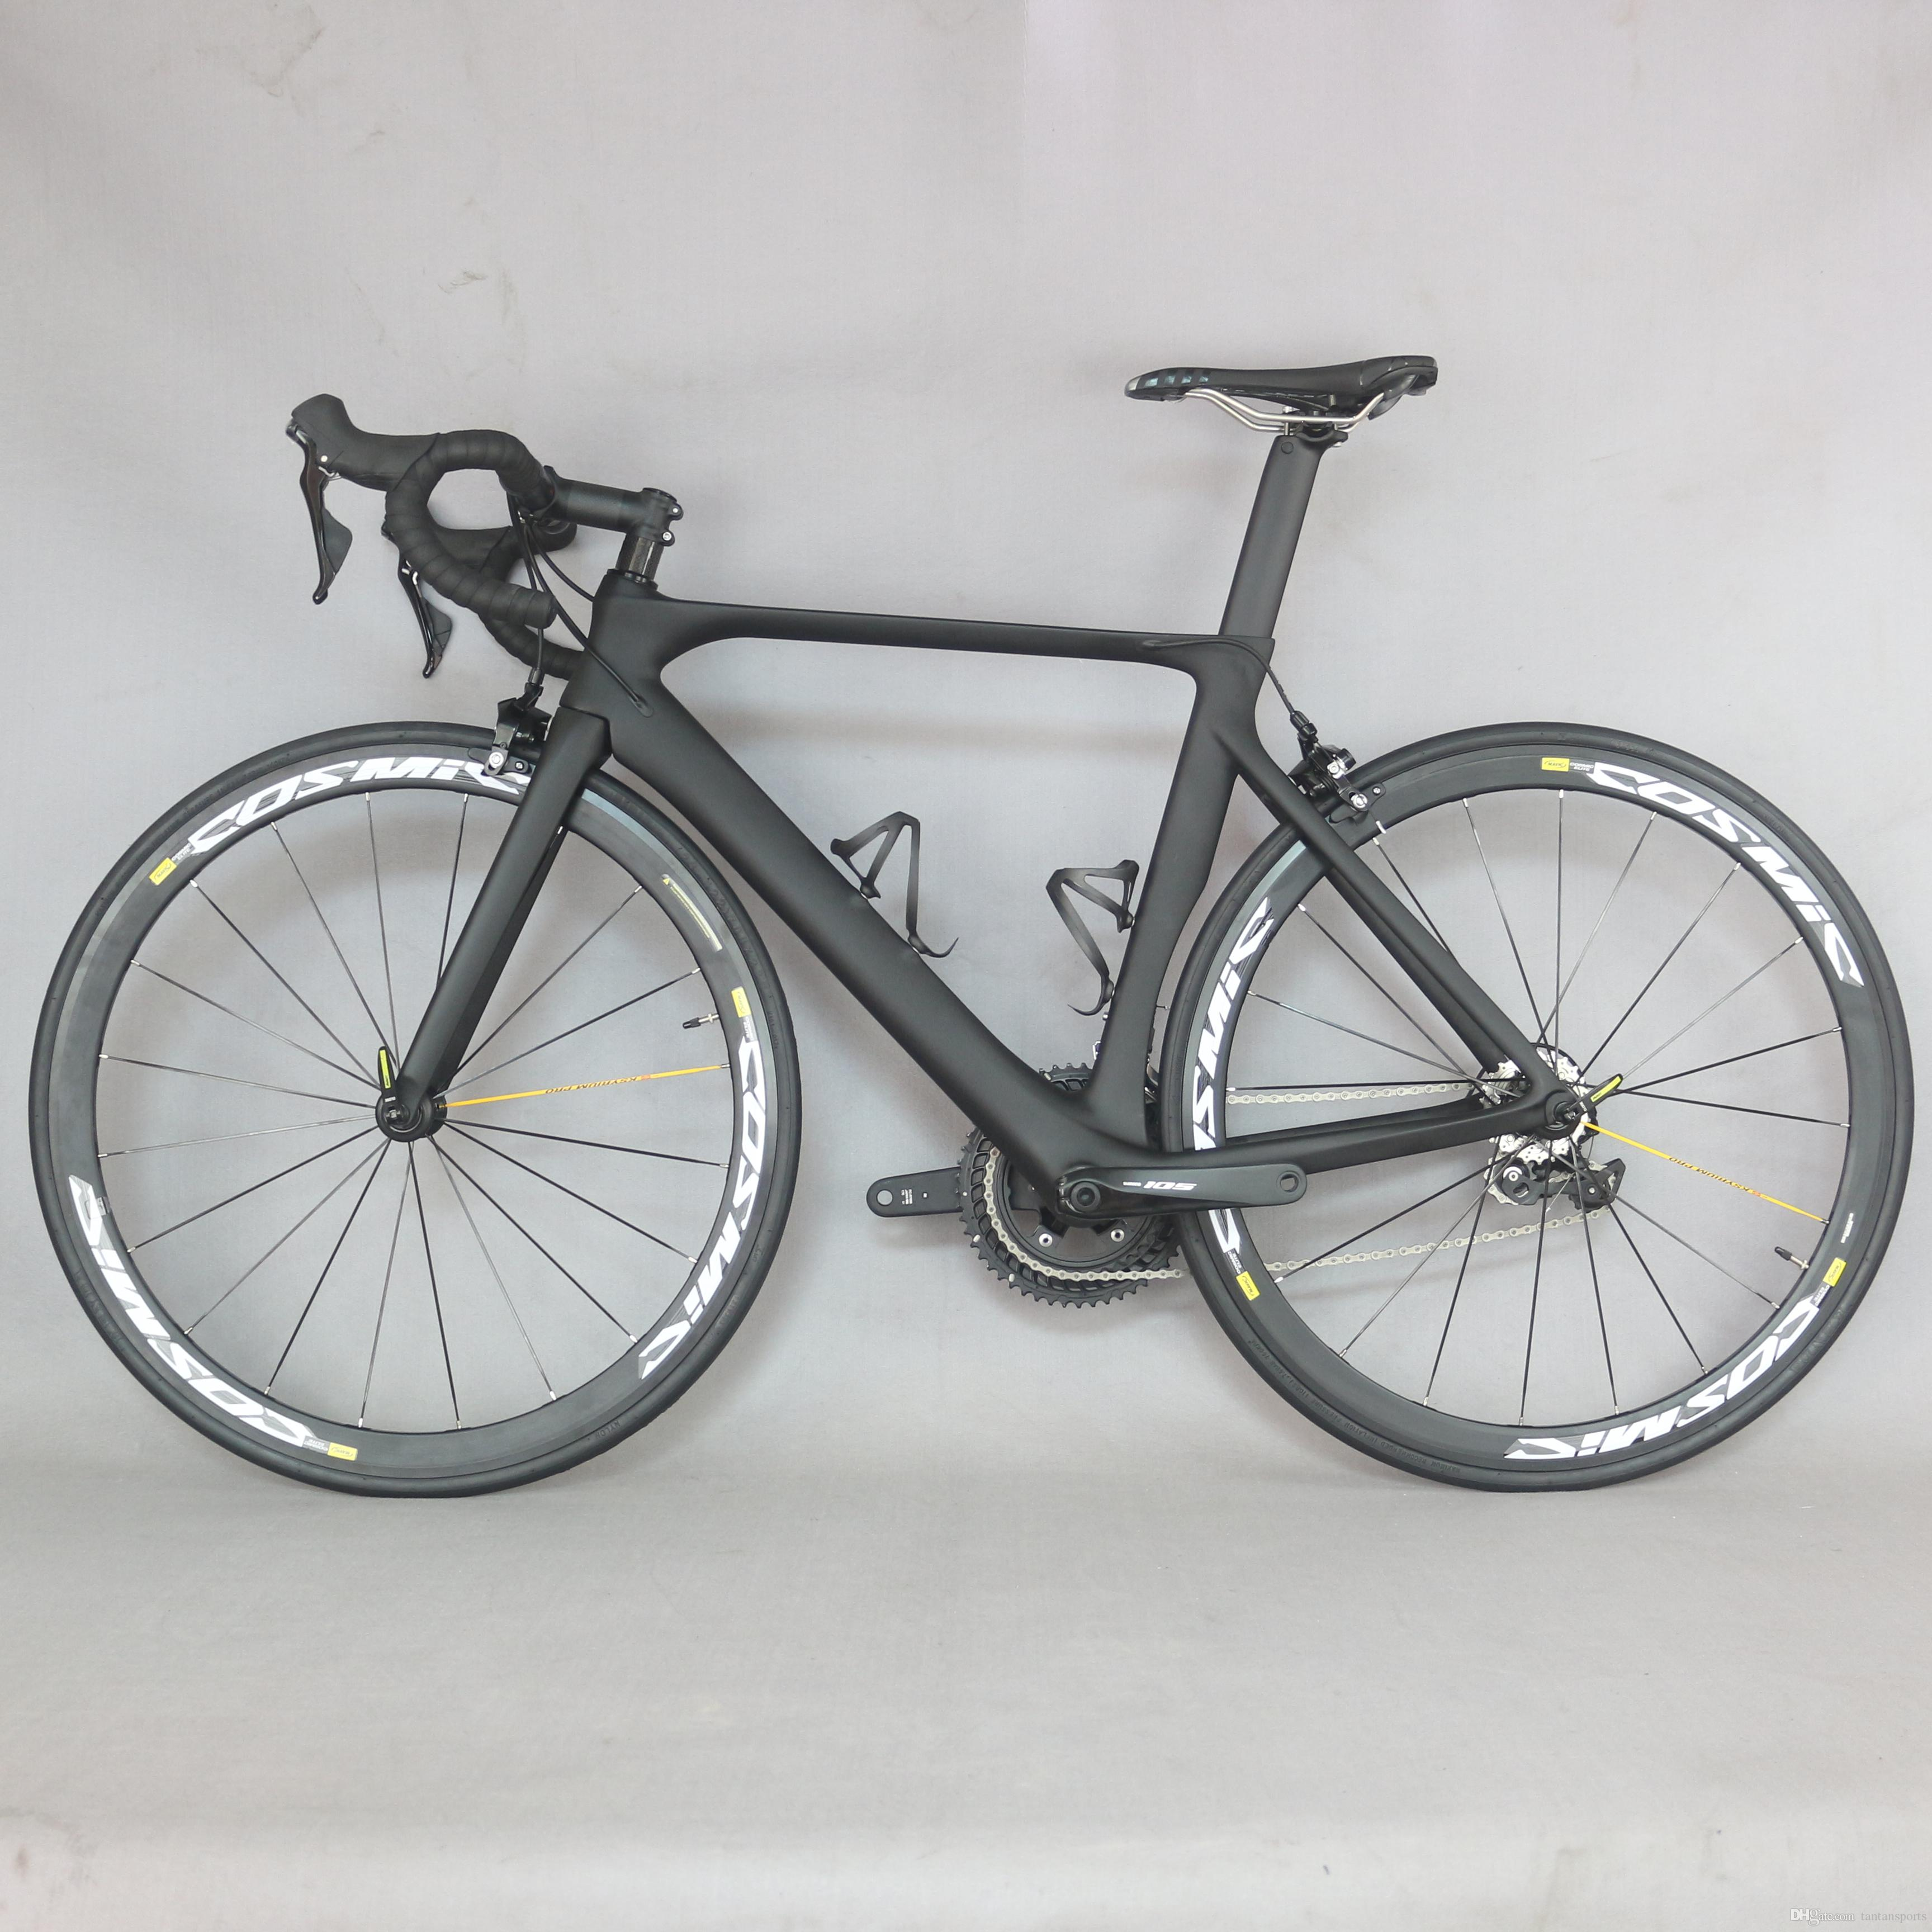 Carbon road bike FM268 Aero design 2019 full Carbon Road Bike Complete Bicycle Carbon Cycling Road Bike with R8000 22 Speed Grou